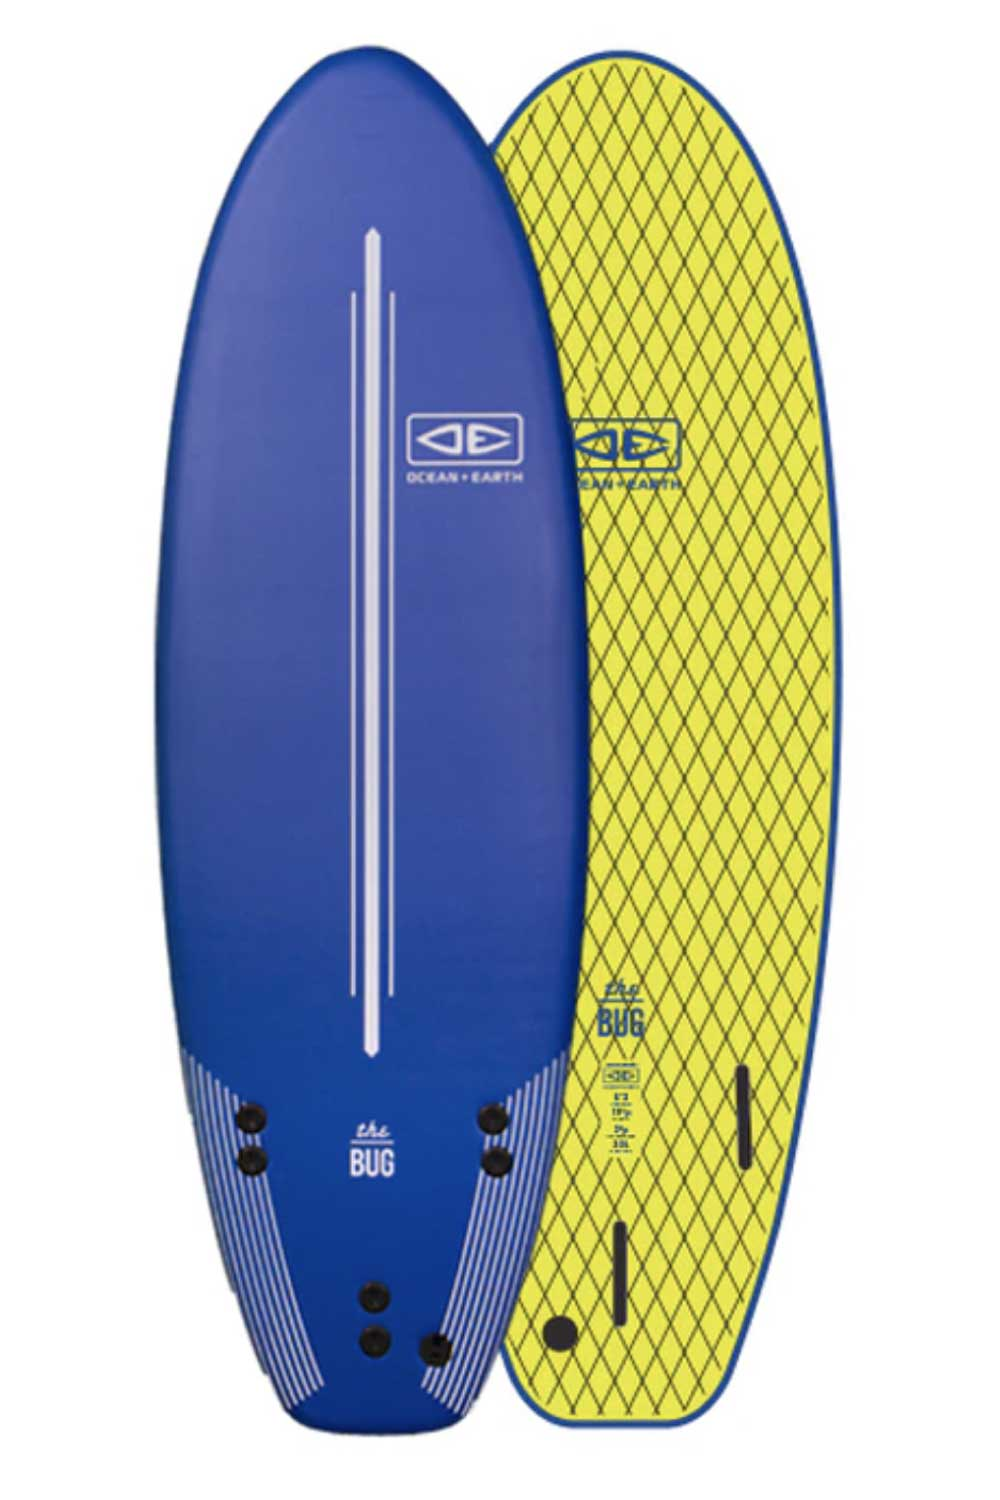 Ocean & Earth BUG Softboard 5'2""